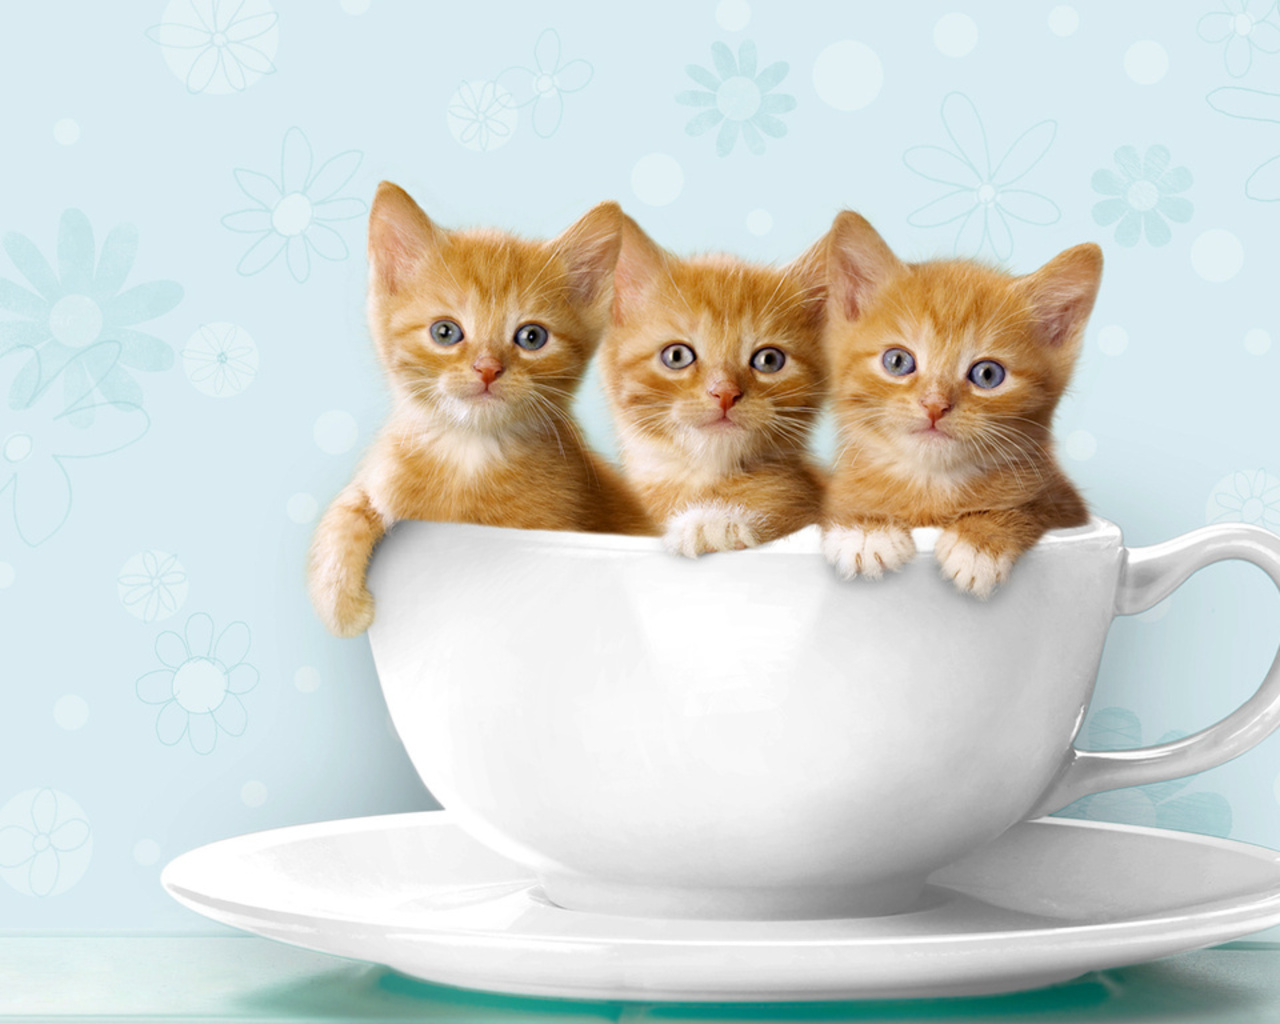 Http 9meow Blogspot Com 2013 04 Cute Cats 7 Html